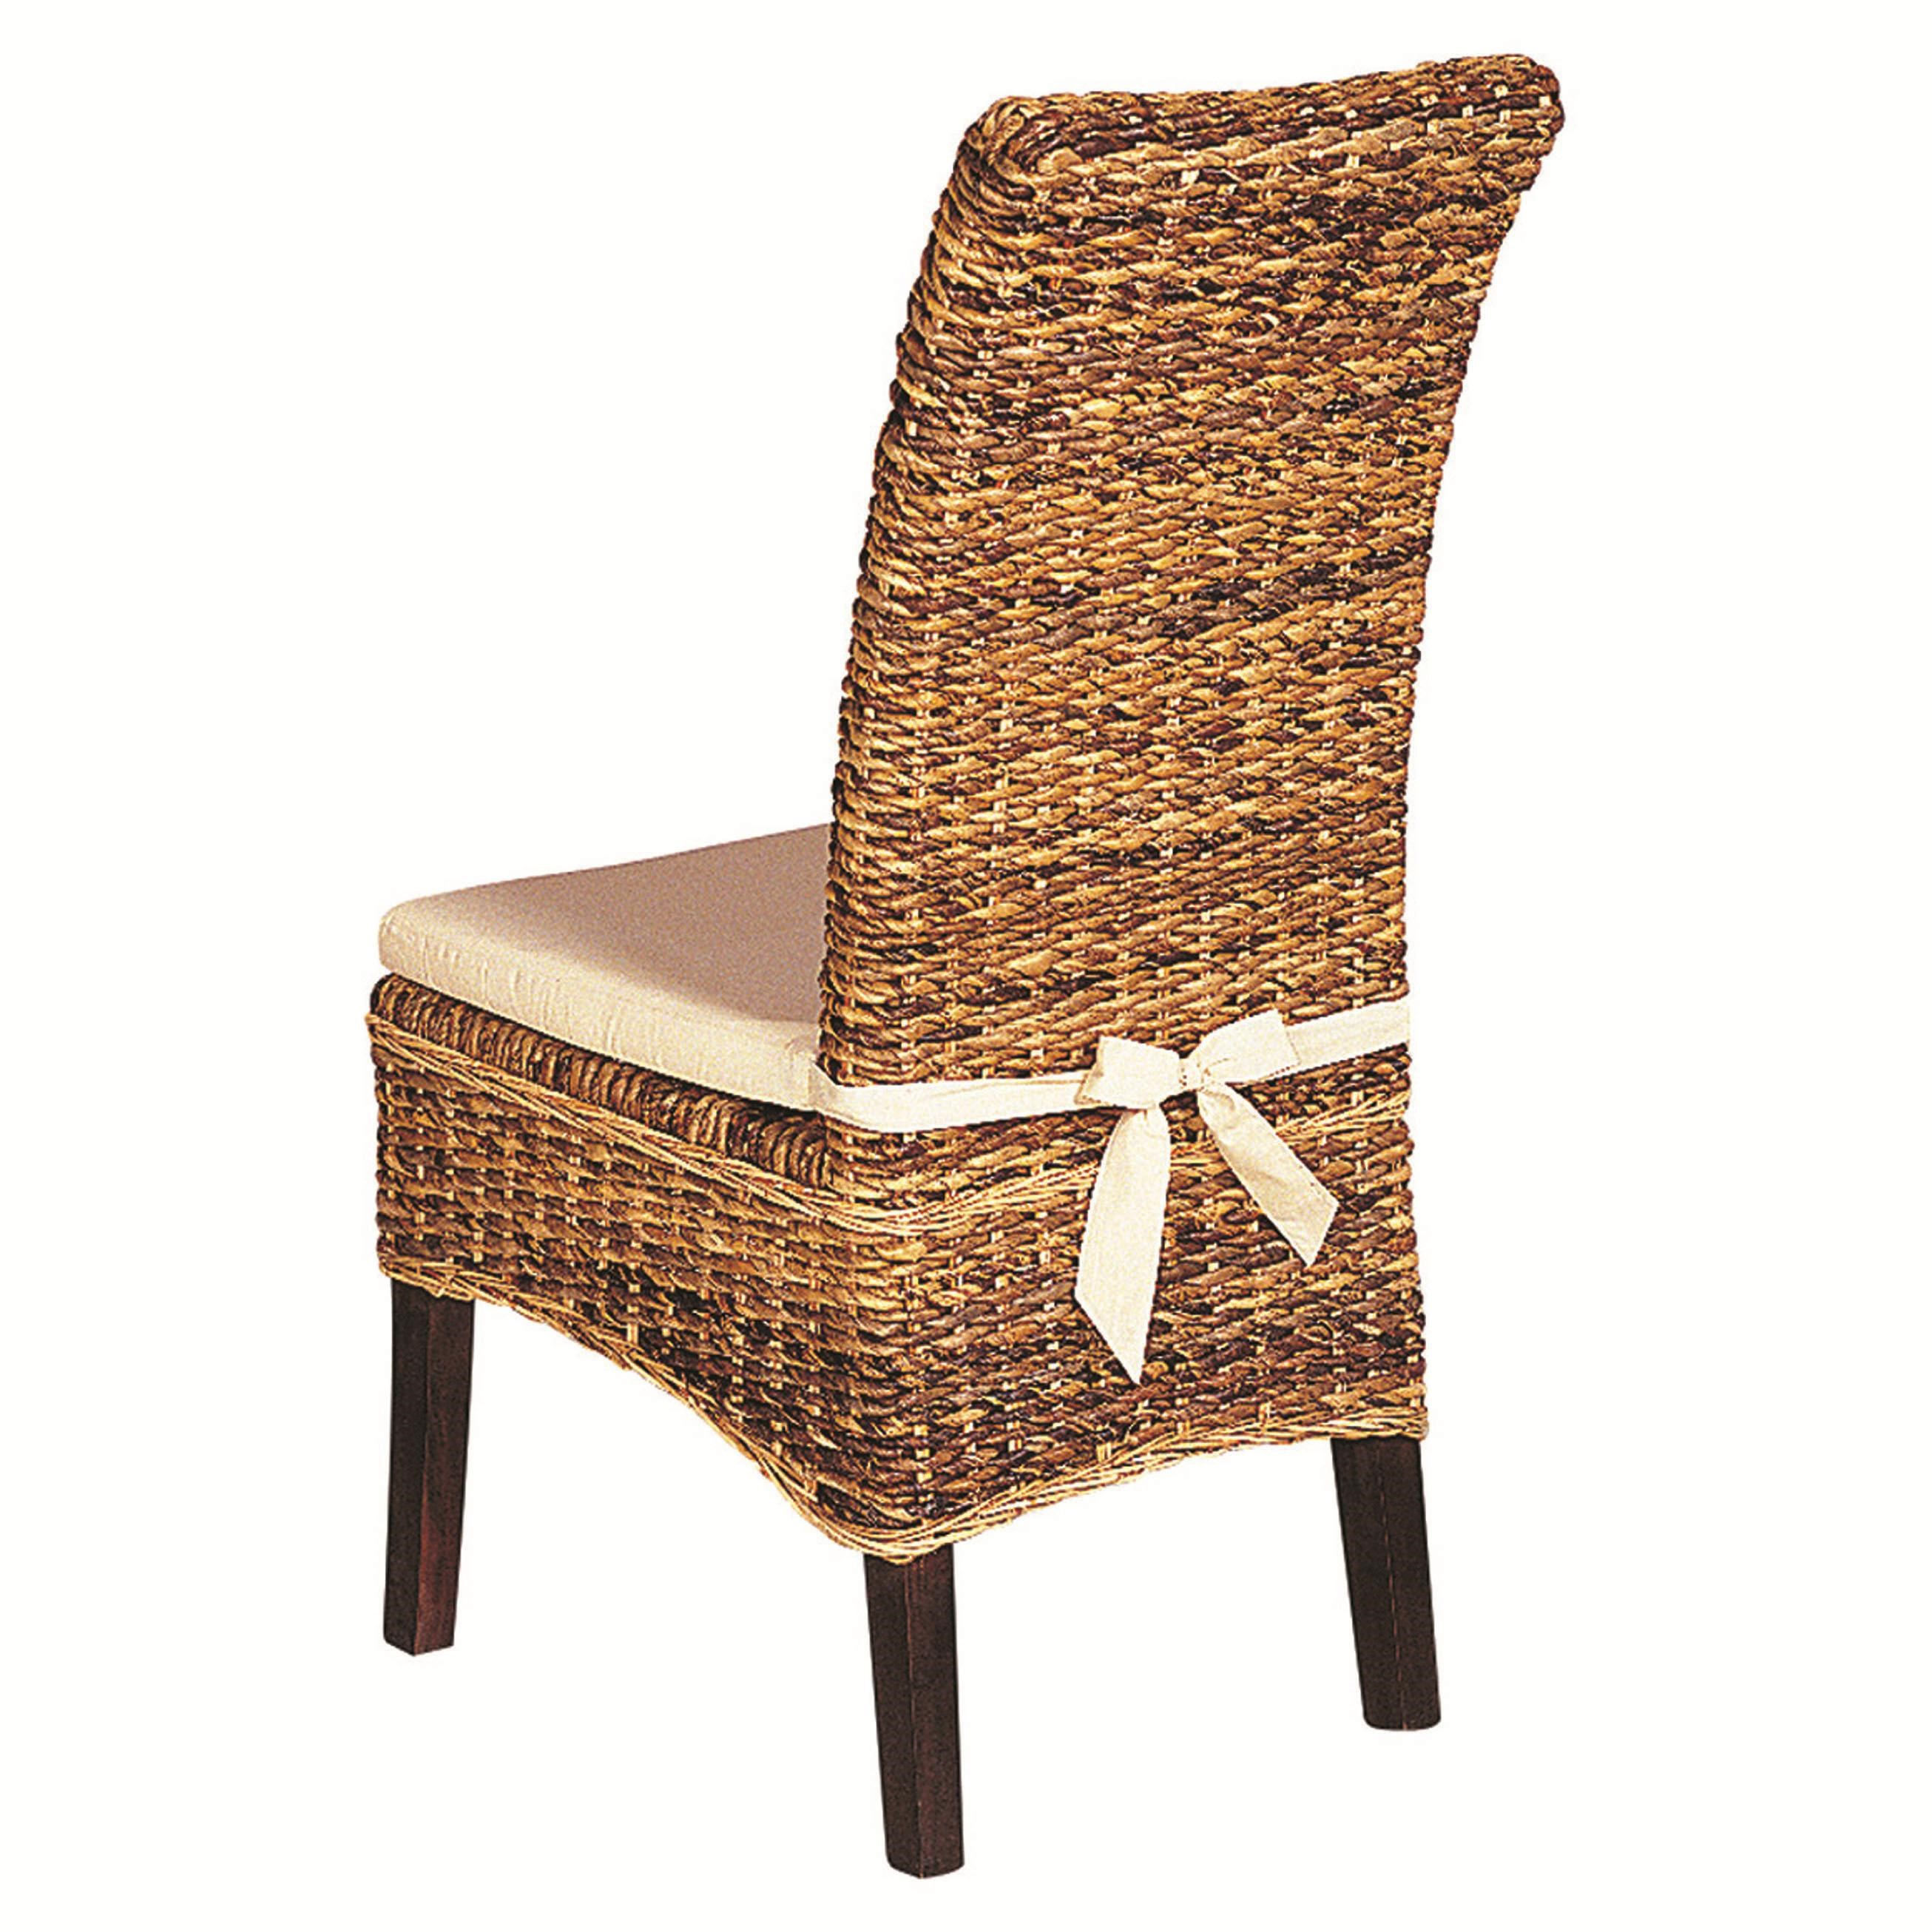 Four Hands Grass Roots Woven Banana Leaf Side Chair With Canvas Cushion    Belfort Furniture   Dining Side Chair